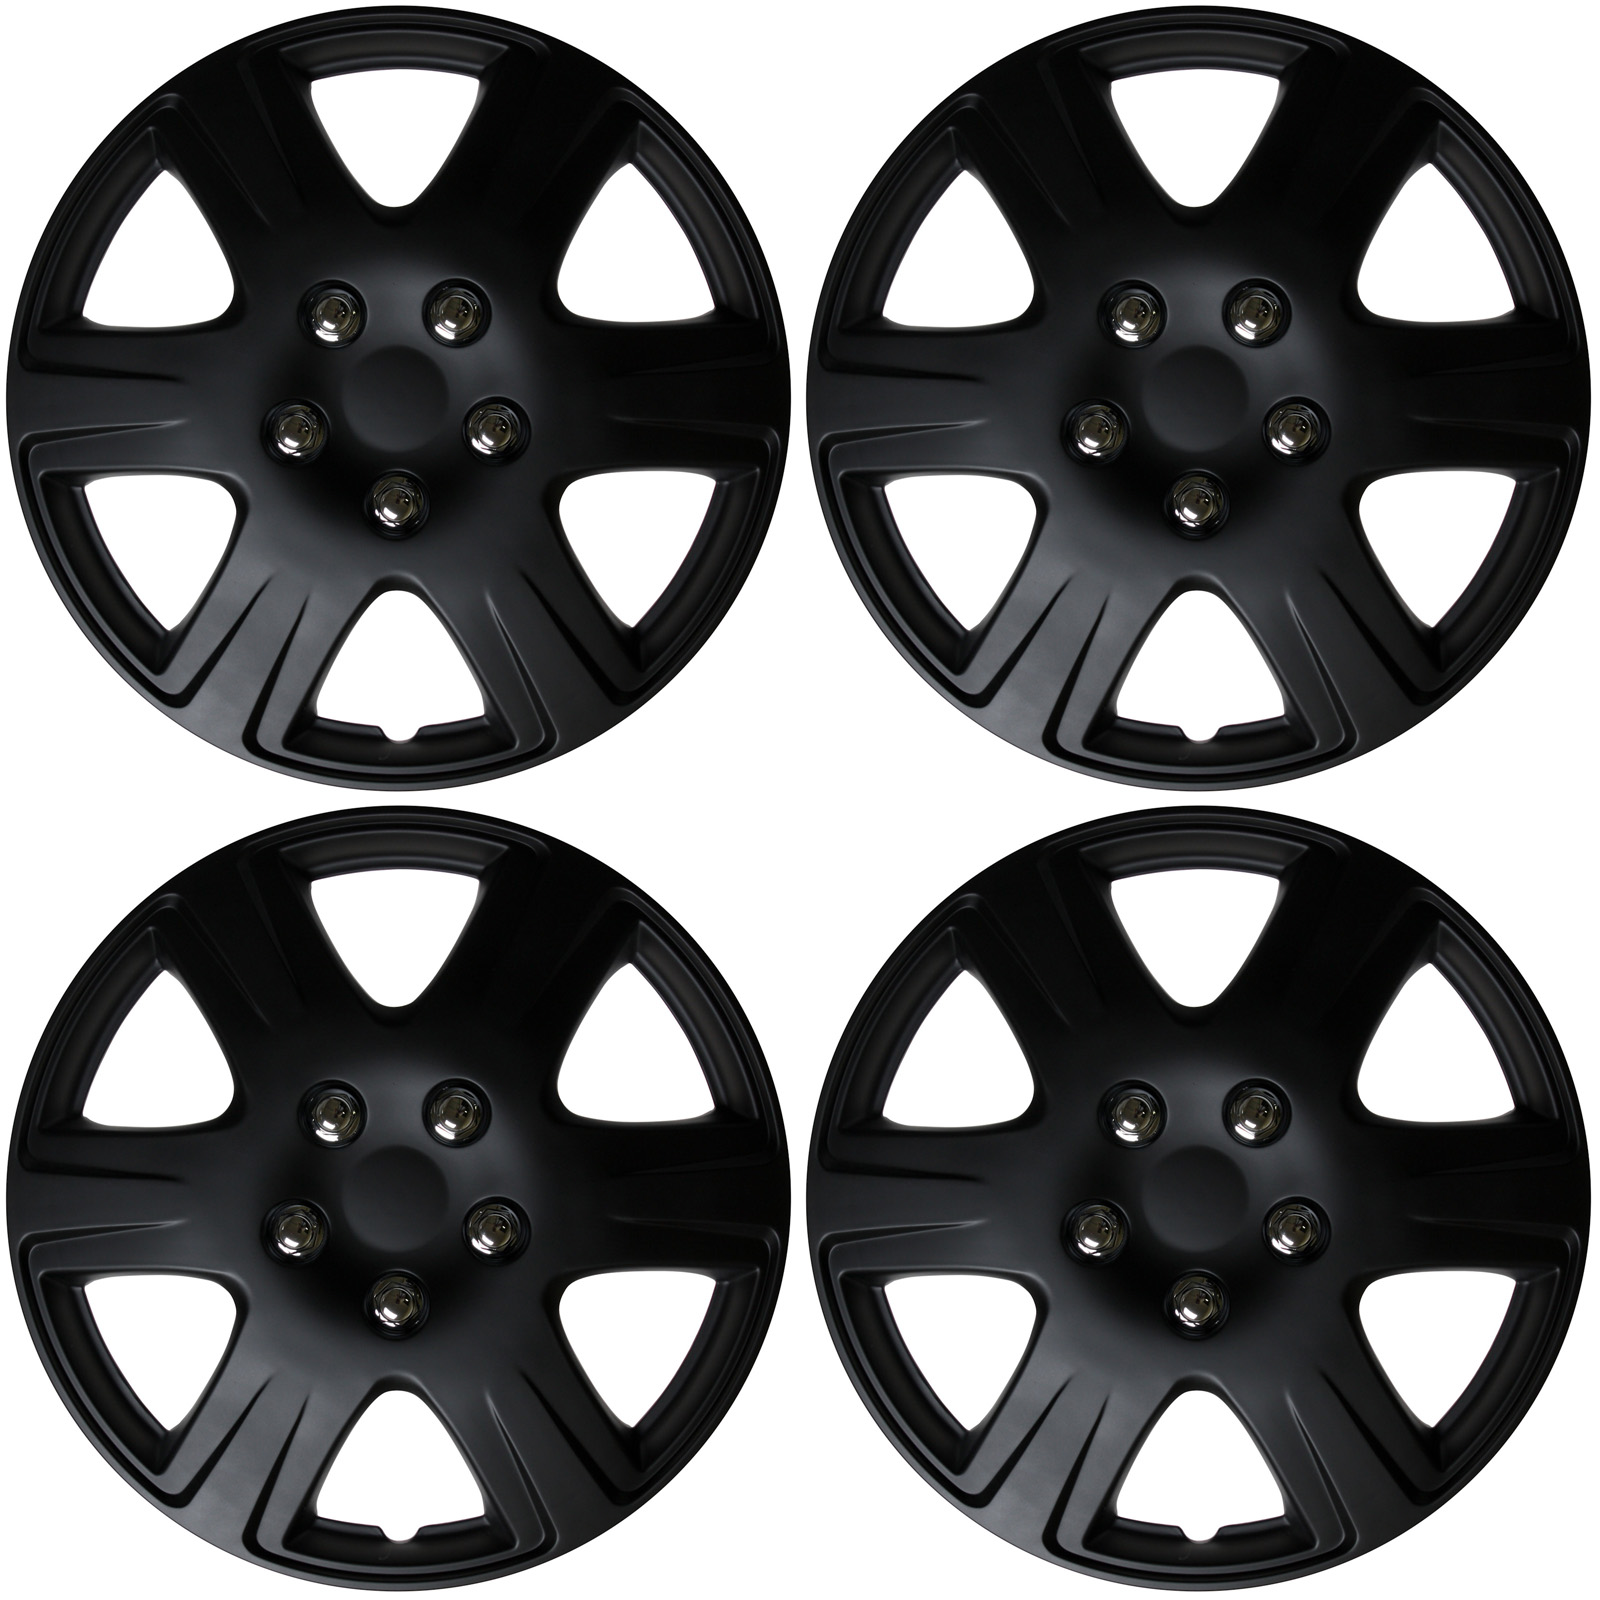 Qty 4 pc black matte hub caps fits 2005 2006 2007 toyota corolla 15 wheel cap